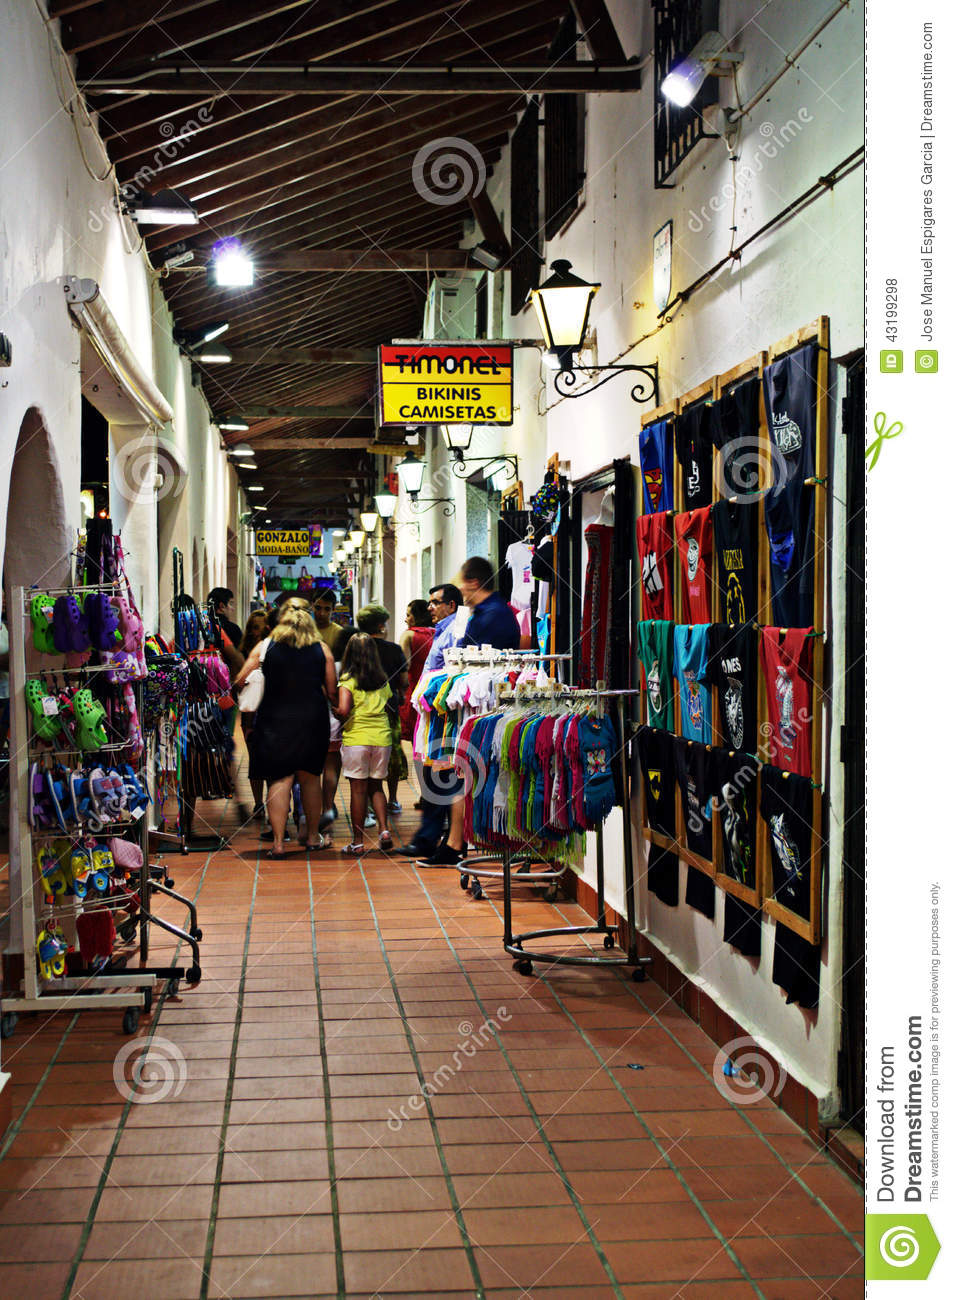 Salon Manga Murcia Commercial Aisle At Night 163 Editorial Stock Photo Image Of